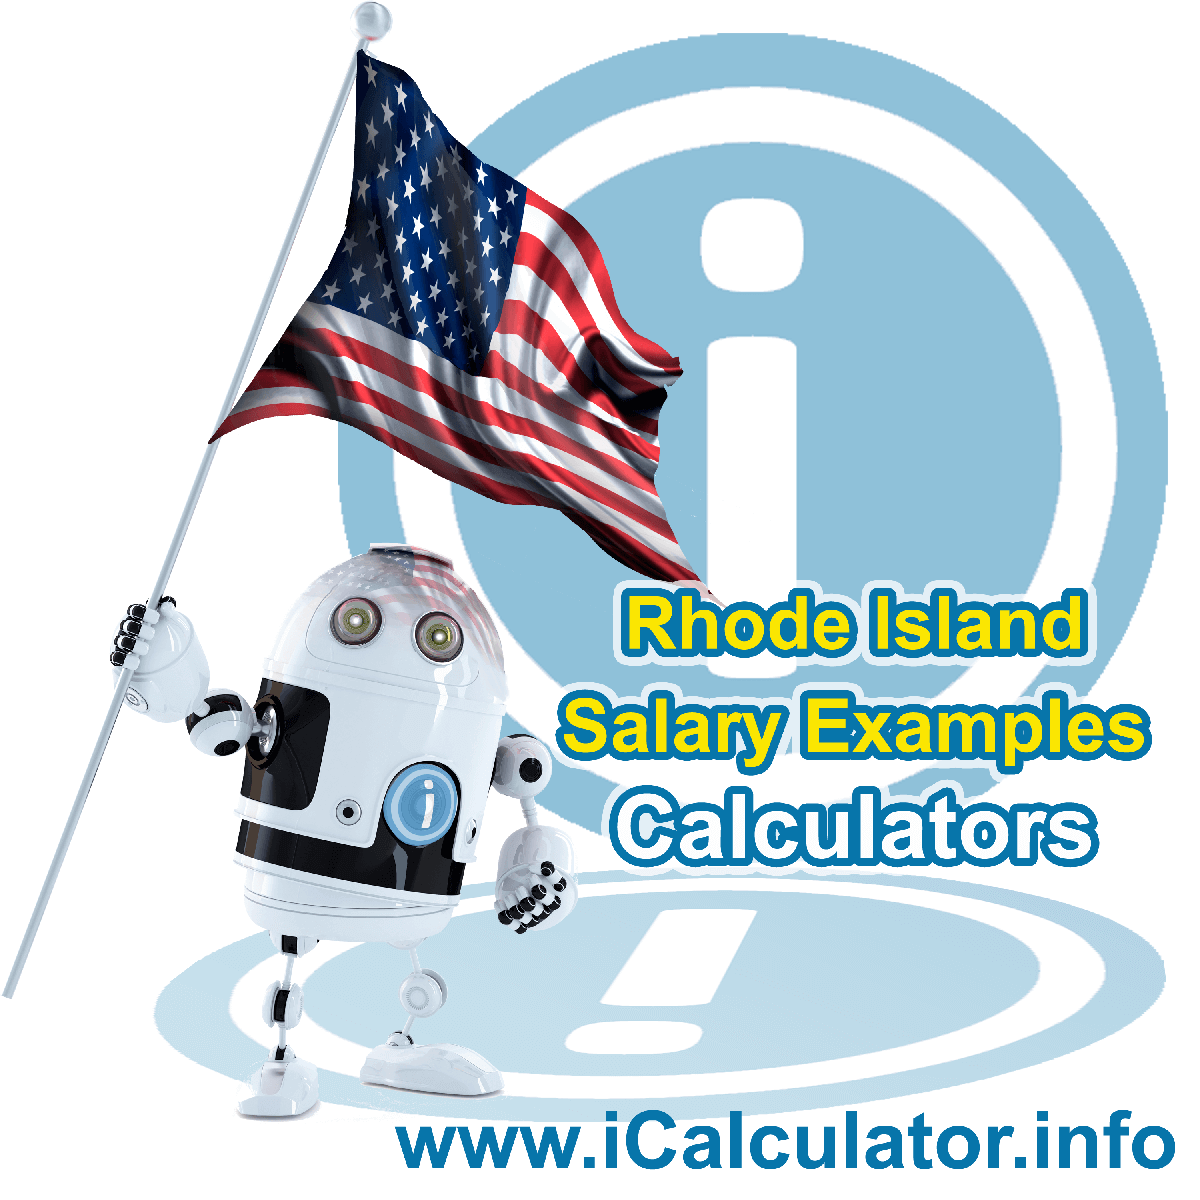 Rhode Island Salary Example for $30,000.00 in 2021 | iCalculator™ | $30,000.00 salary example for employee and employer paying Rhode Island State tincome taxes. Detailed salary after tax calculation including Rhode Island State Tax, Federal State Tax, Medicare Deductions, Social Security, Capital Gains and other income tax and salary deductions complete with supporting Rhode Island state tax tables